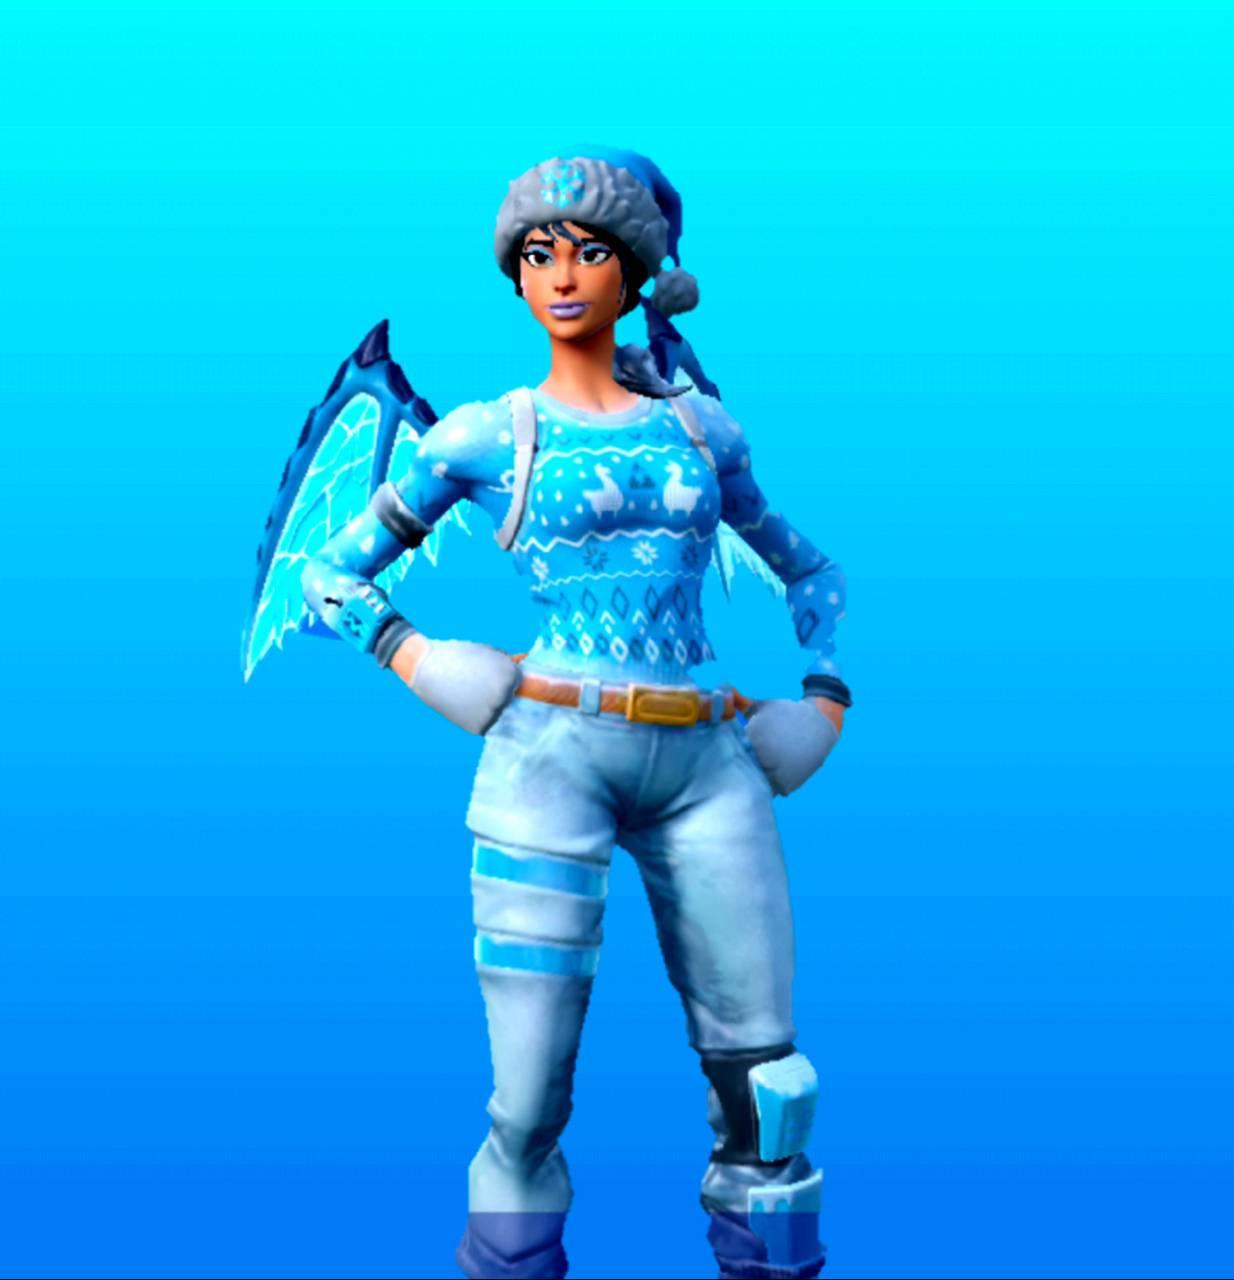 Frozen Nog Ops Wallpapers Wallpaper Cave Nog ops is an uncommon outfit in battle royale that can be purchased from the item shop. frozen nog ops wallpapers wallpaper cave